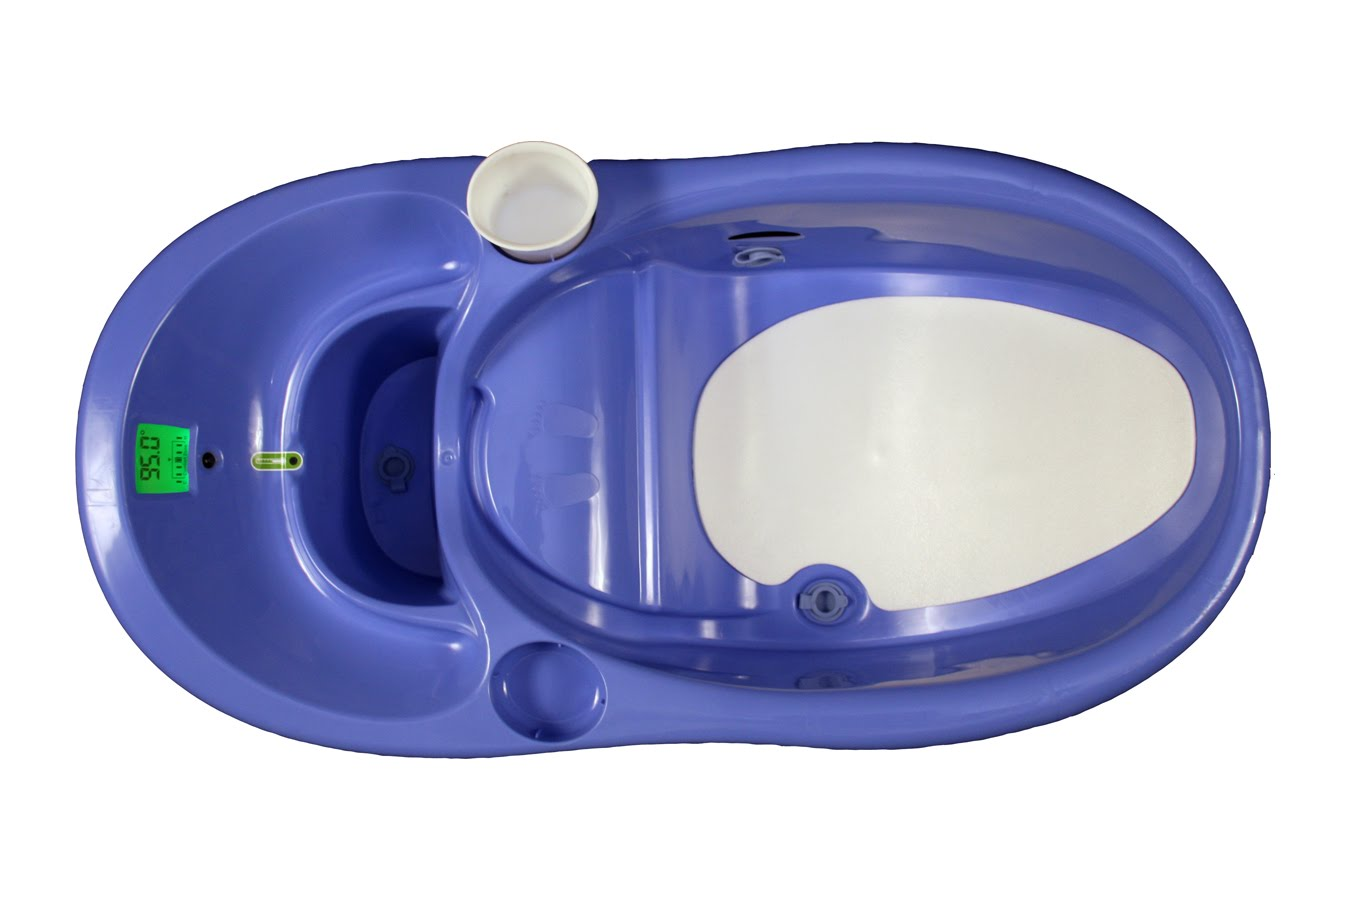 Jewels & Treasures: 4moms Cleanwater Infant Tub Review & Giveaway